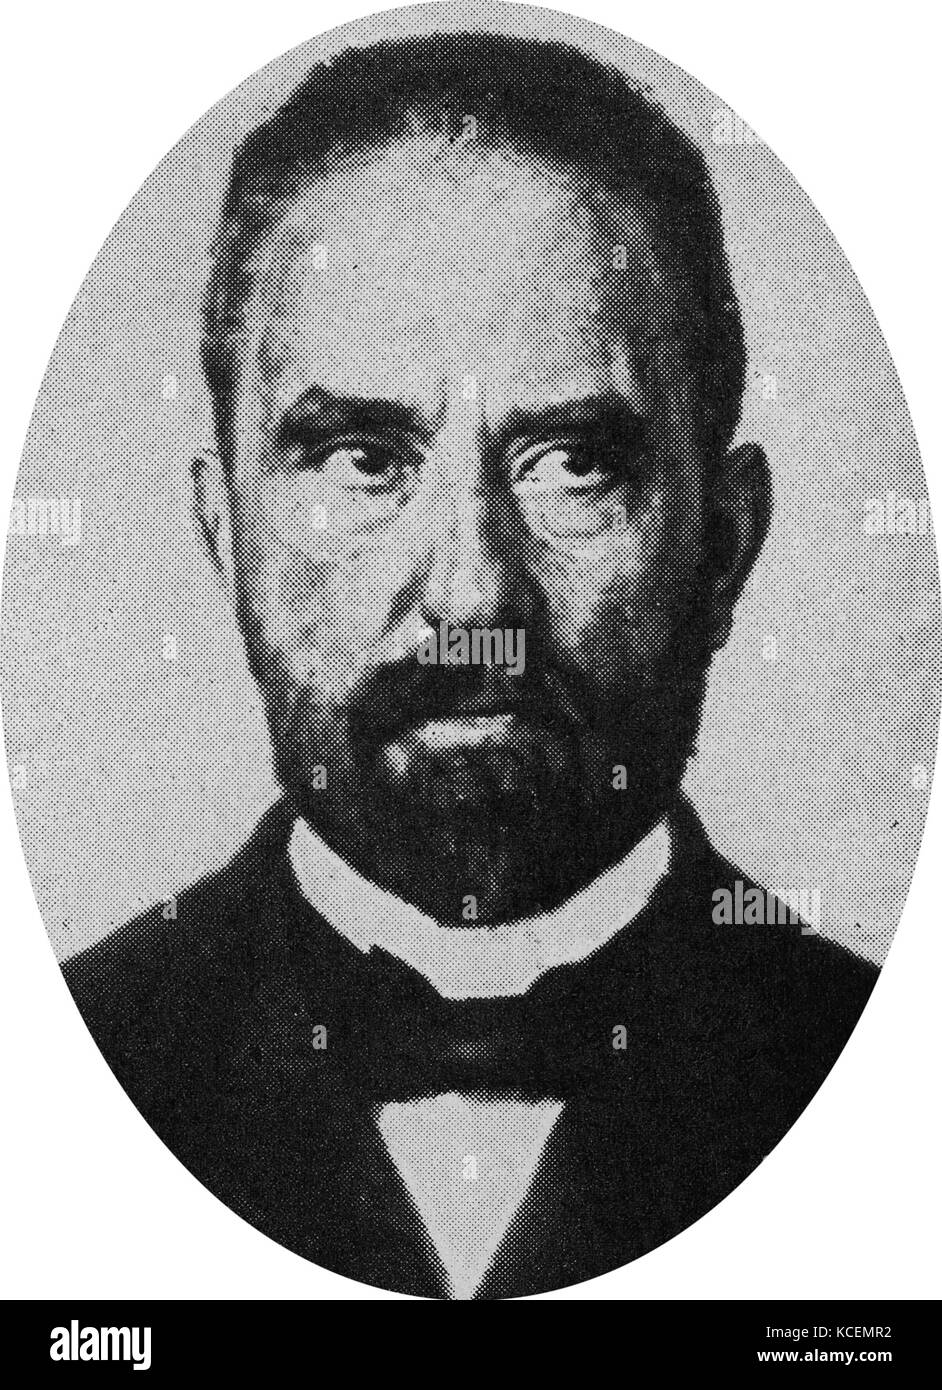 Hugo Dieter Stinnes (1870 – 1924) was a German industrialist and politician. - Stock Image